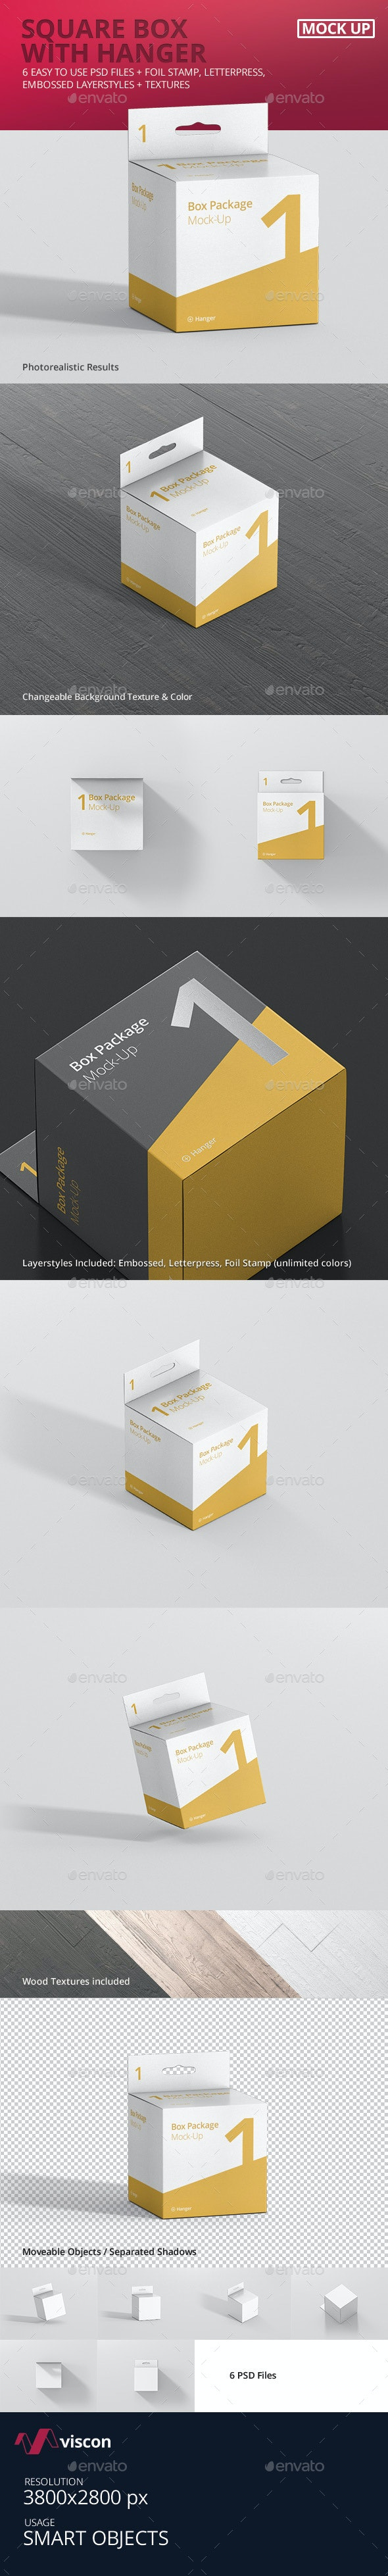 Package Box Mock-Up - Square with Hanger - Miscellaneous Packaging